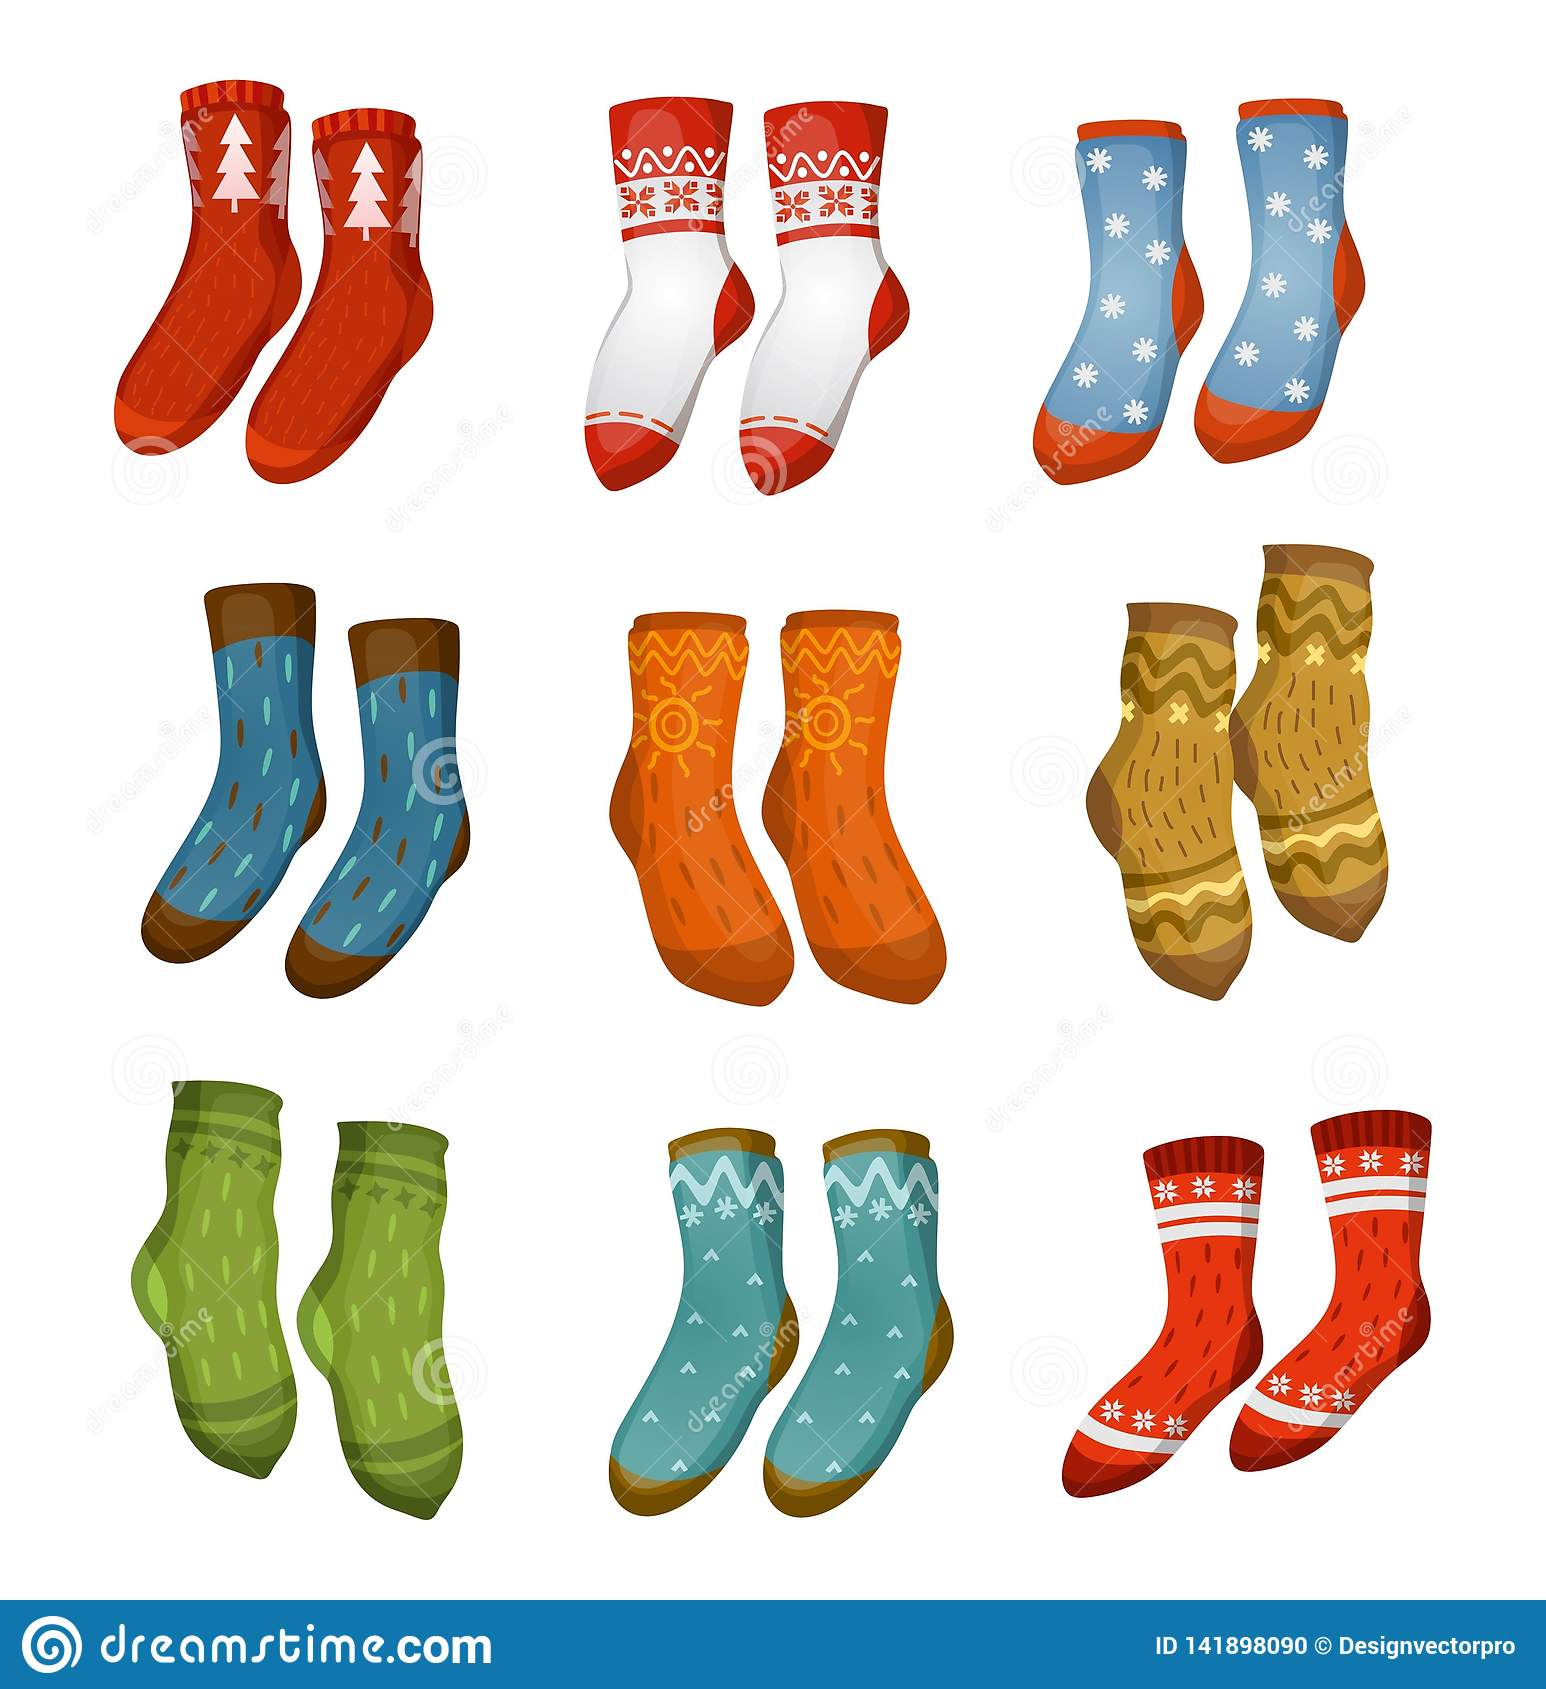 96e1234e9e Ugly Socks Collection. Christmas Socks For Party